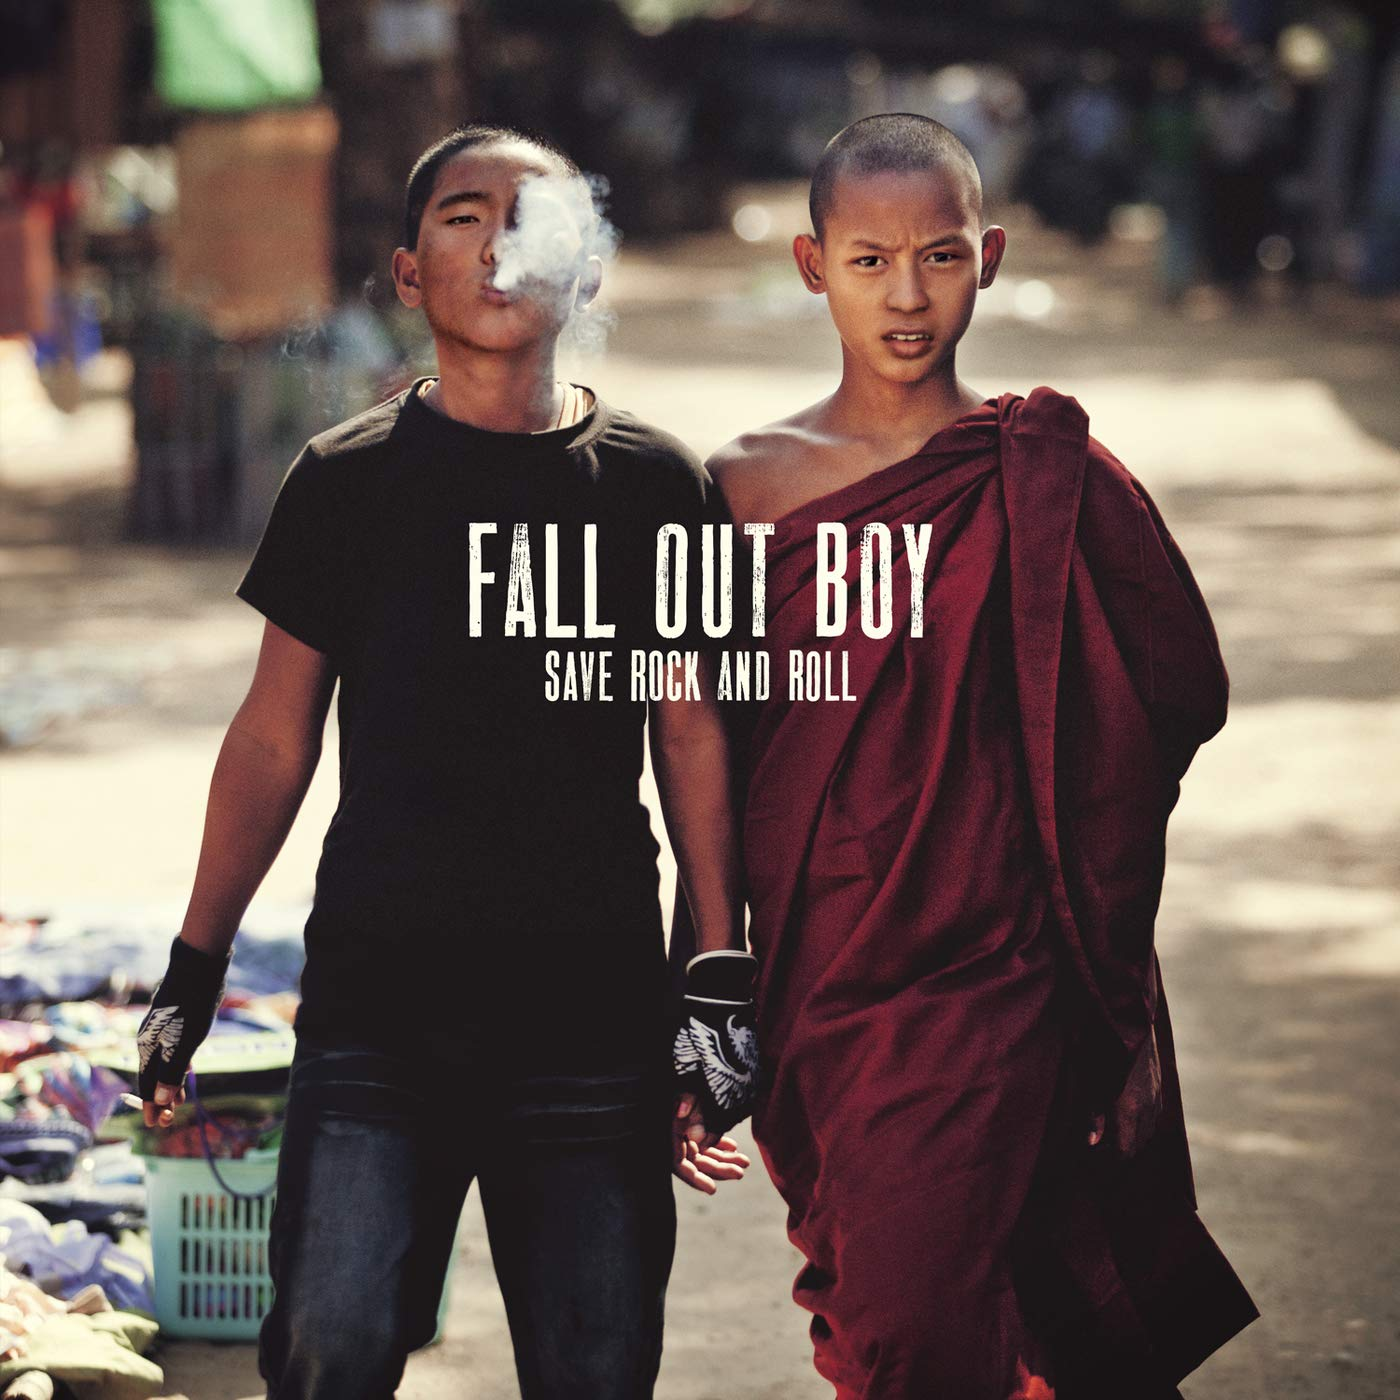 fall out boy save rock and roll album free download